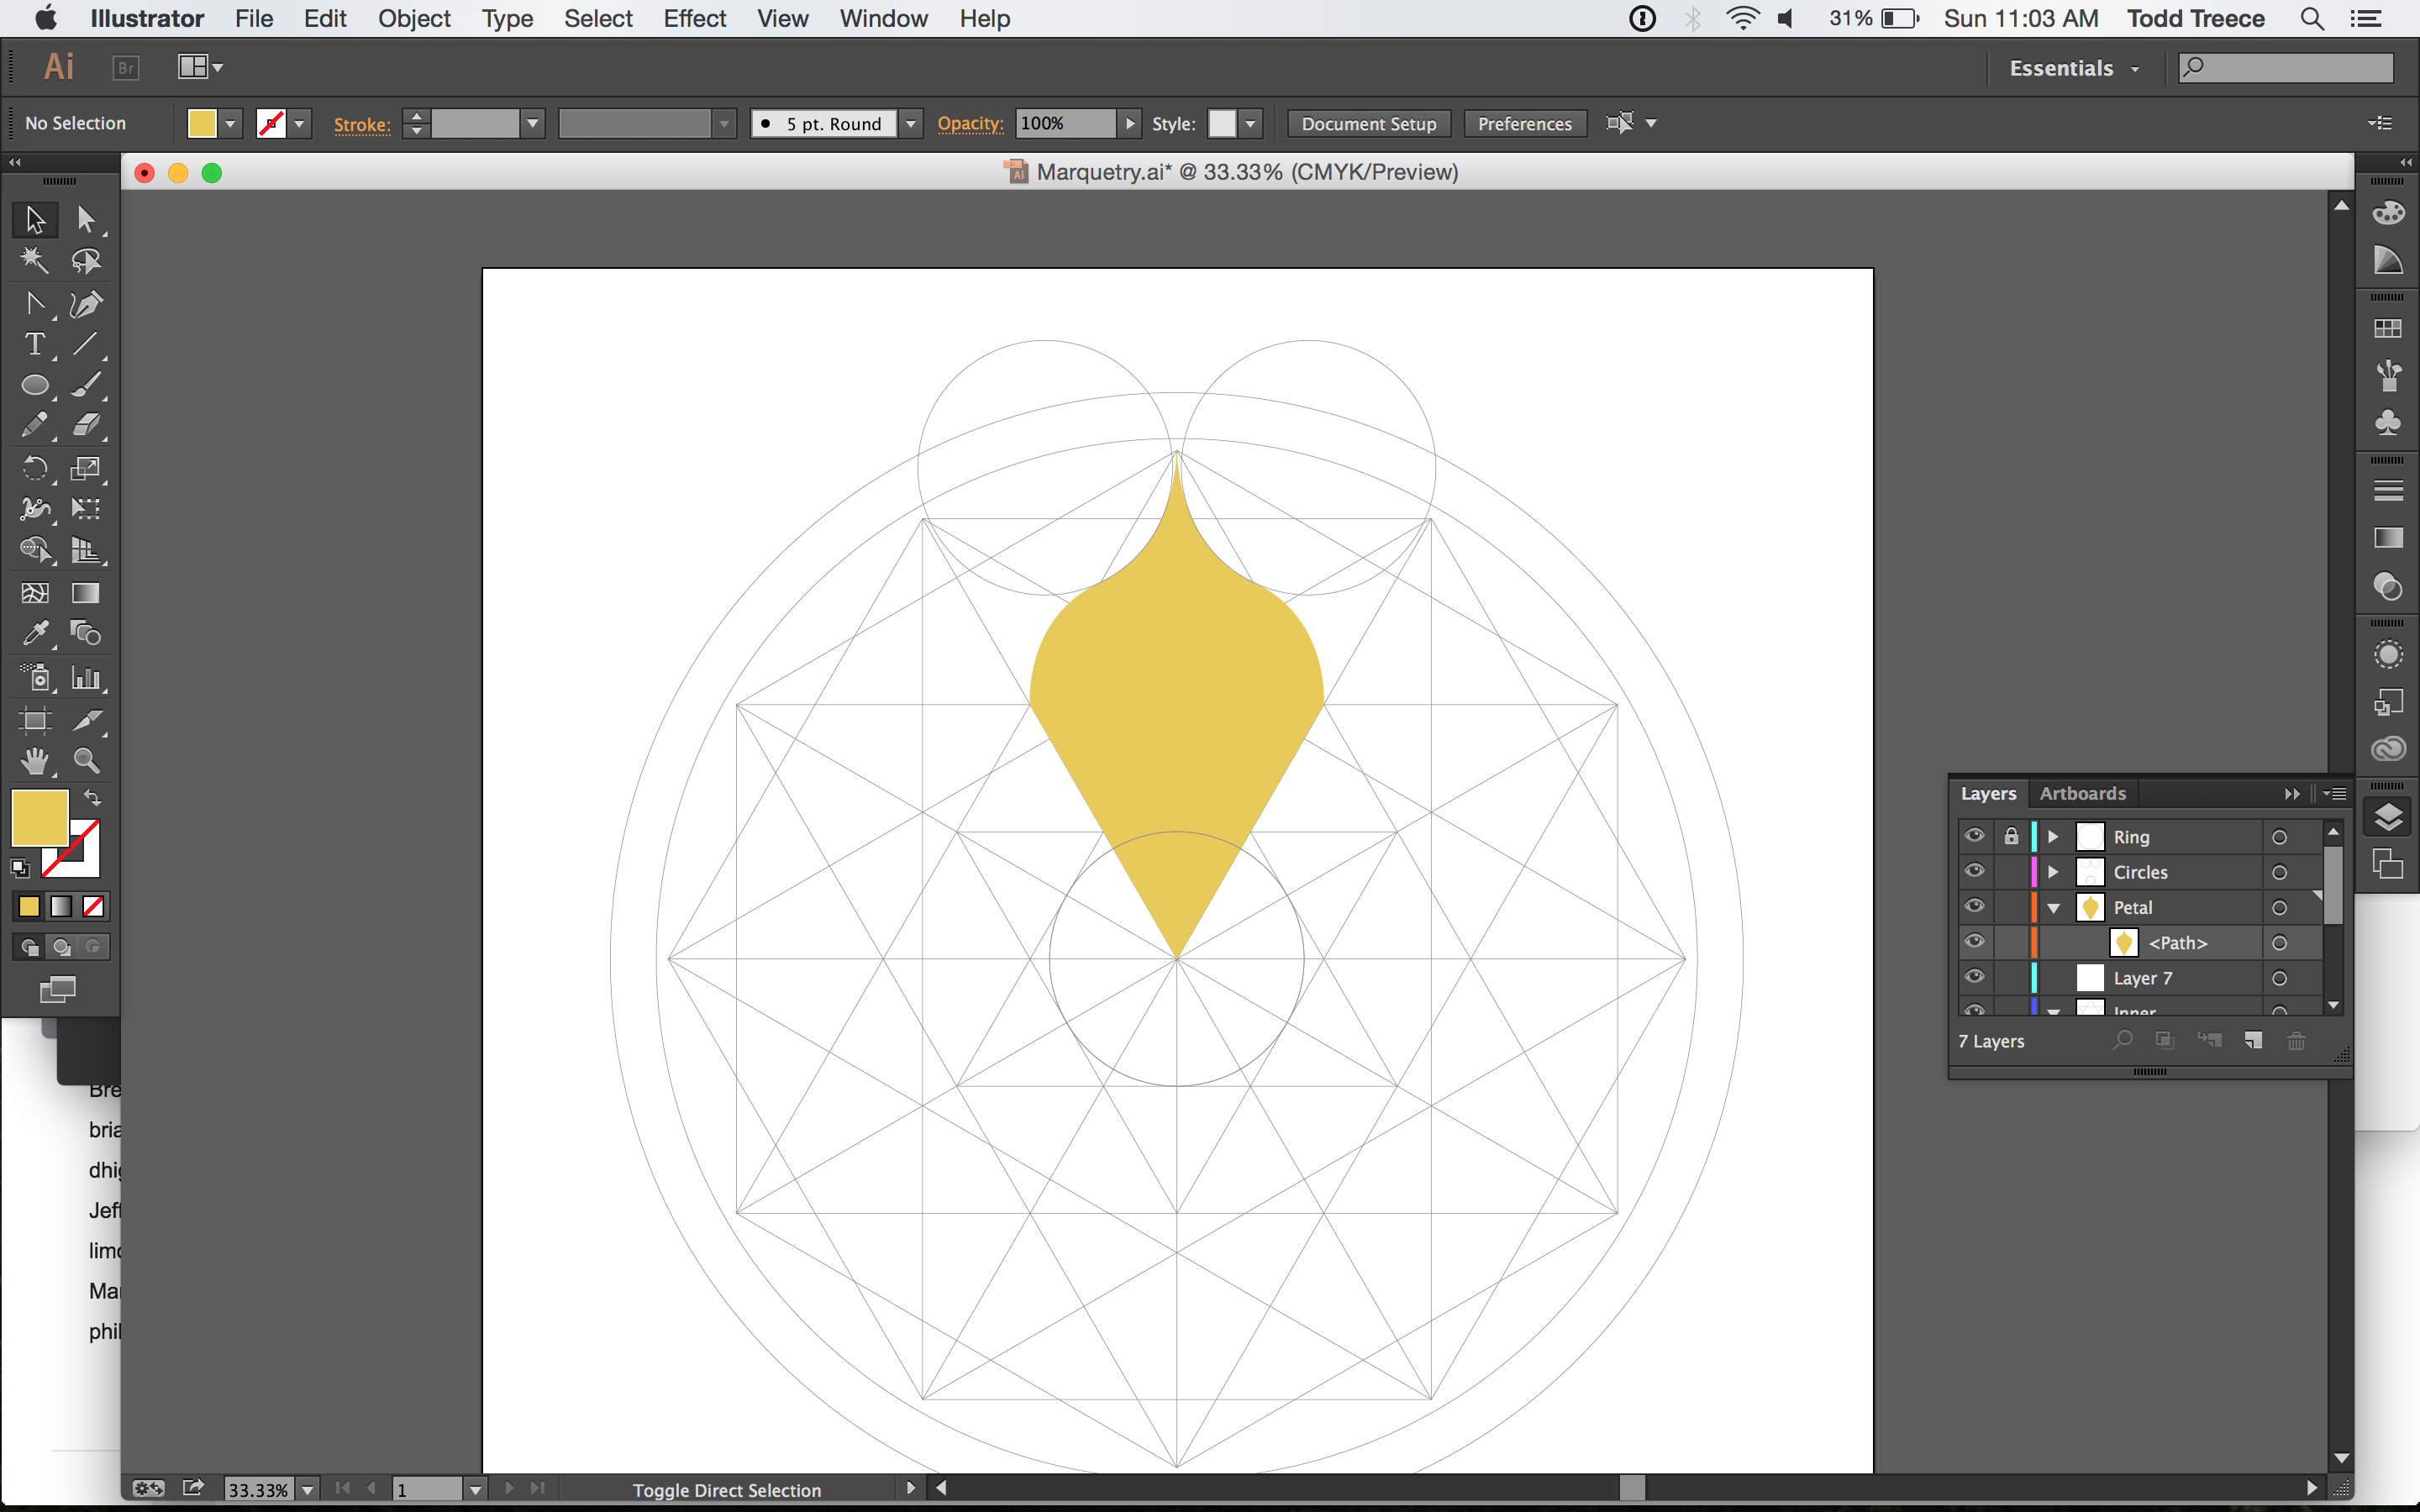 projects_Screen_Shot_2015-03-15_at_11.03.13_AM.png